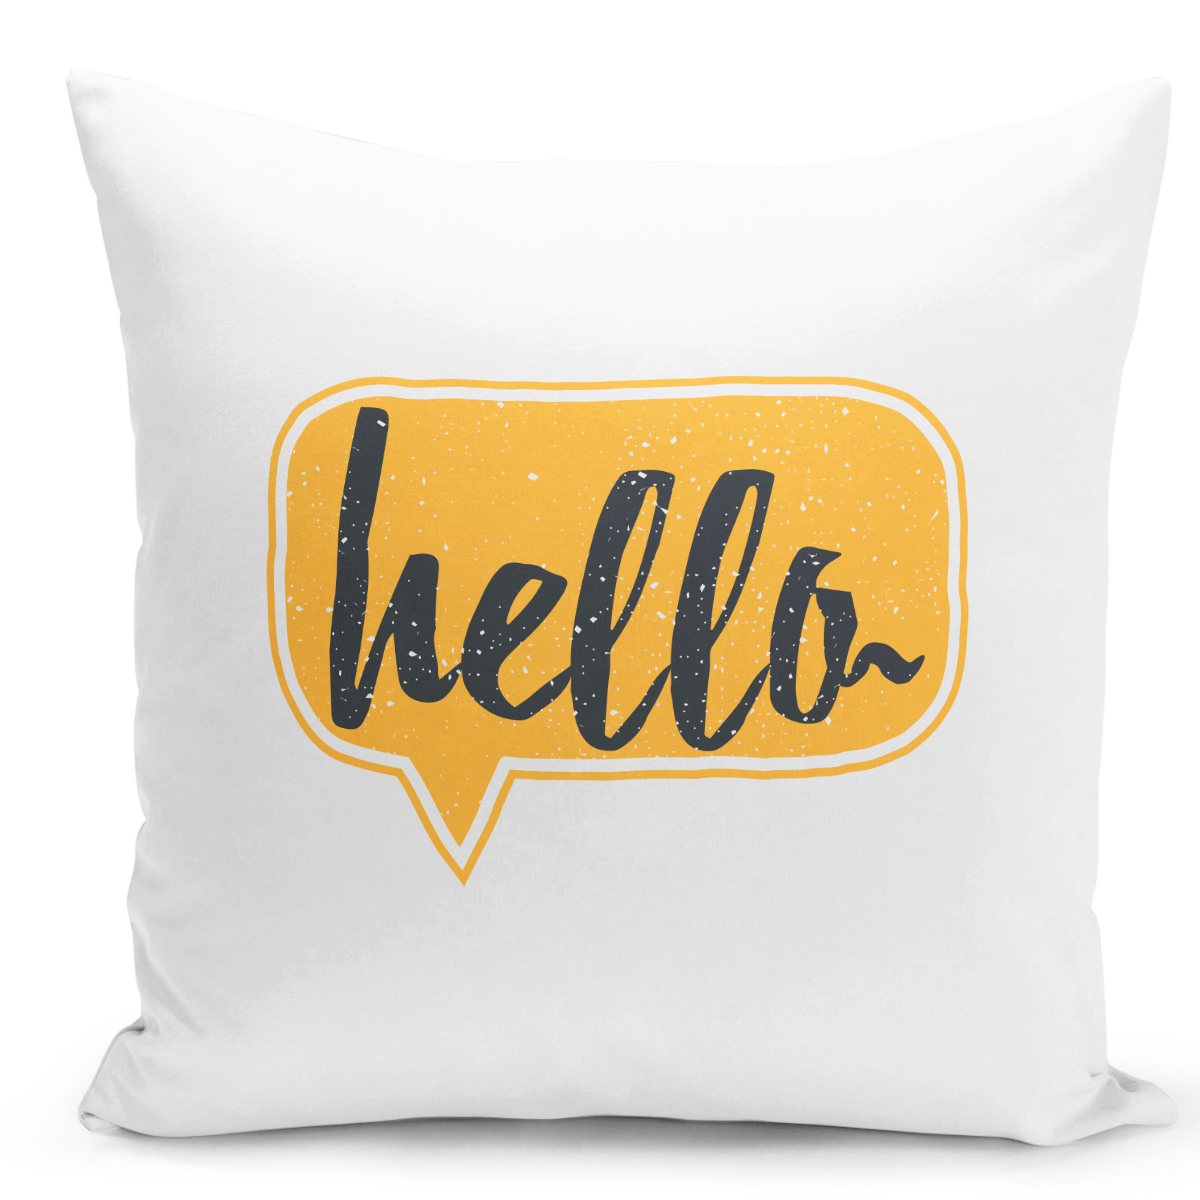 White-Throw-Pillow-Hello-Yellow-Pillow---Pure-White-Printed-16-x-16-inch-Square-Home-Decor-Couch-Pillow-